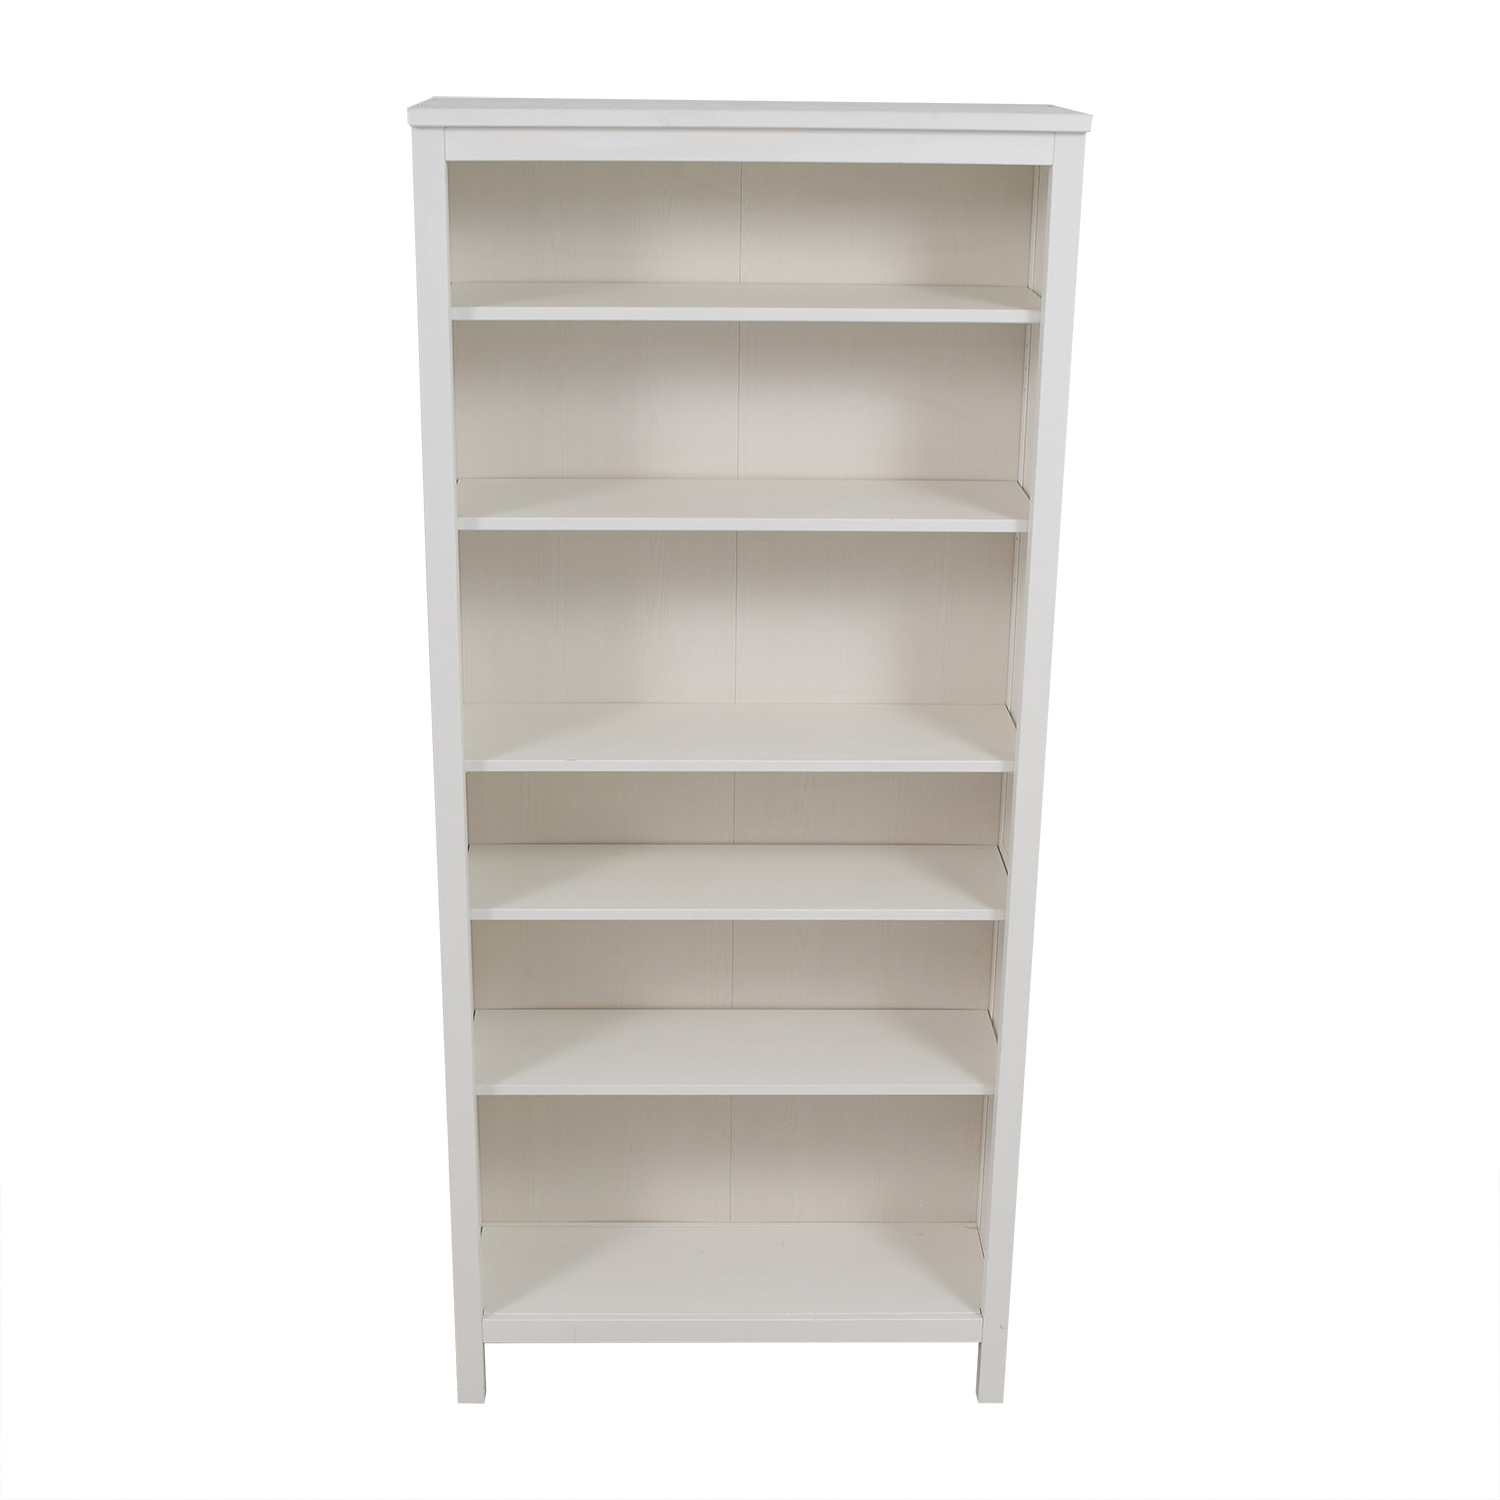 shop IKEA White Hemnes Bookshelf IKEA